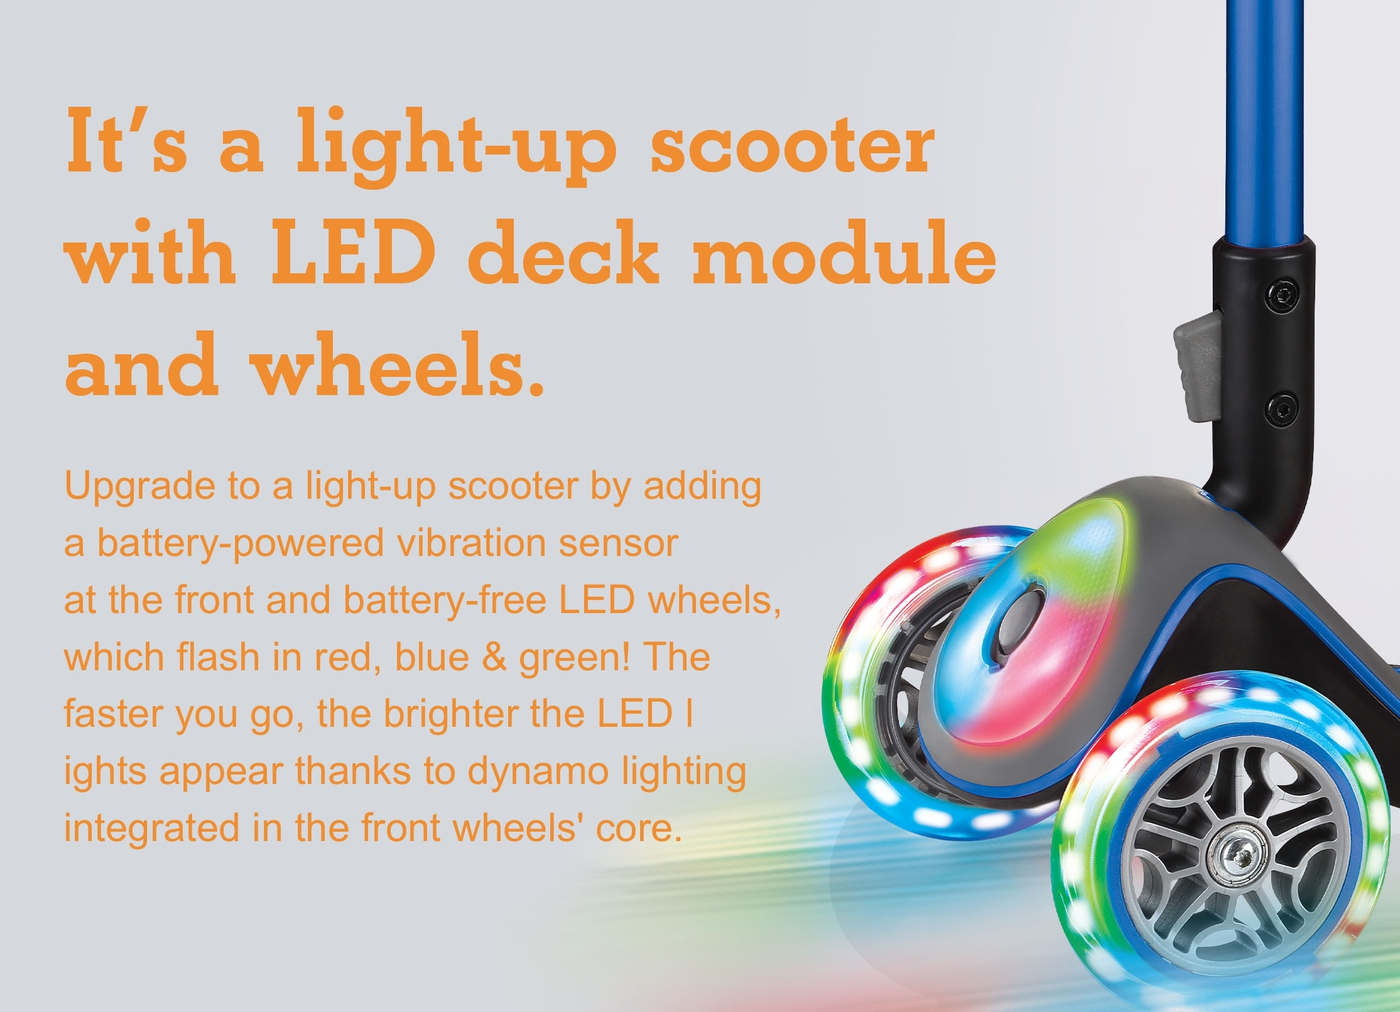 It's a light-up scooter with LED deck module and wheels!